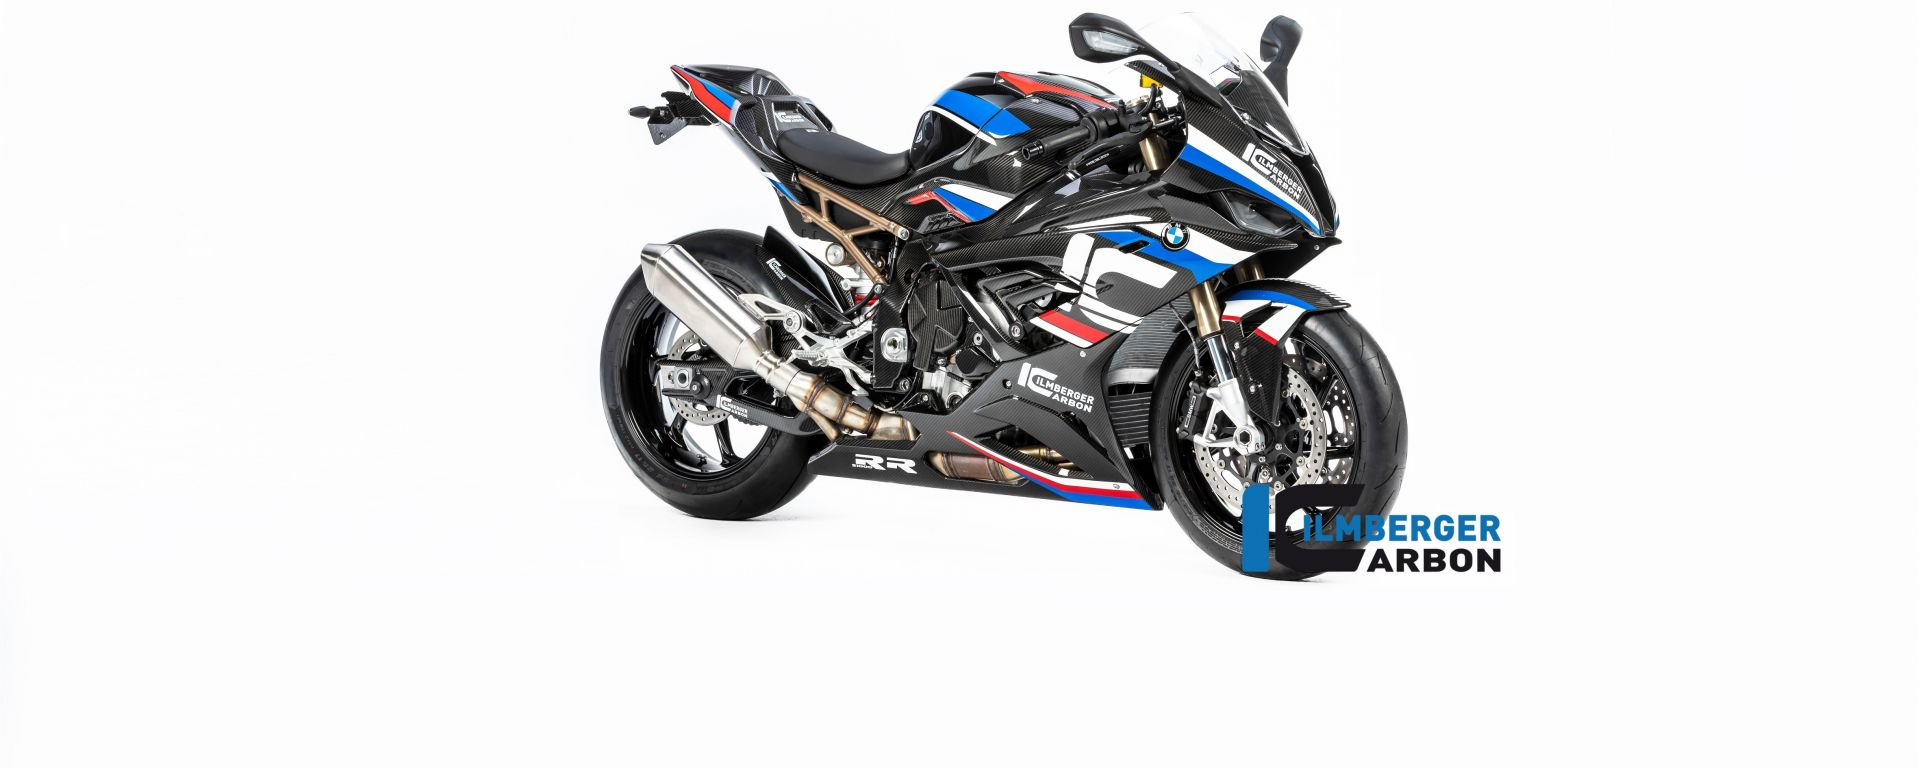 BMW S 1000 RR 2019 stradale con parti speciali Ilmberger Carbon